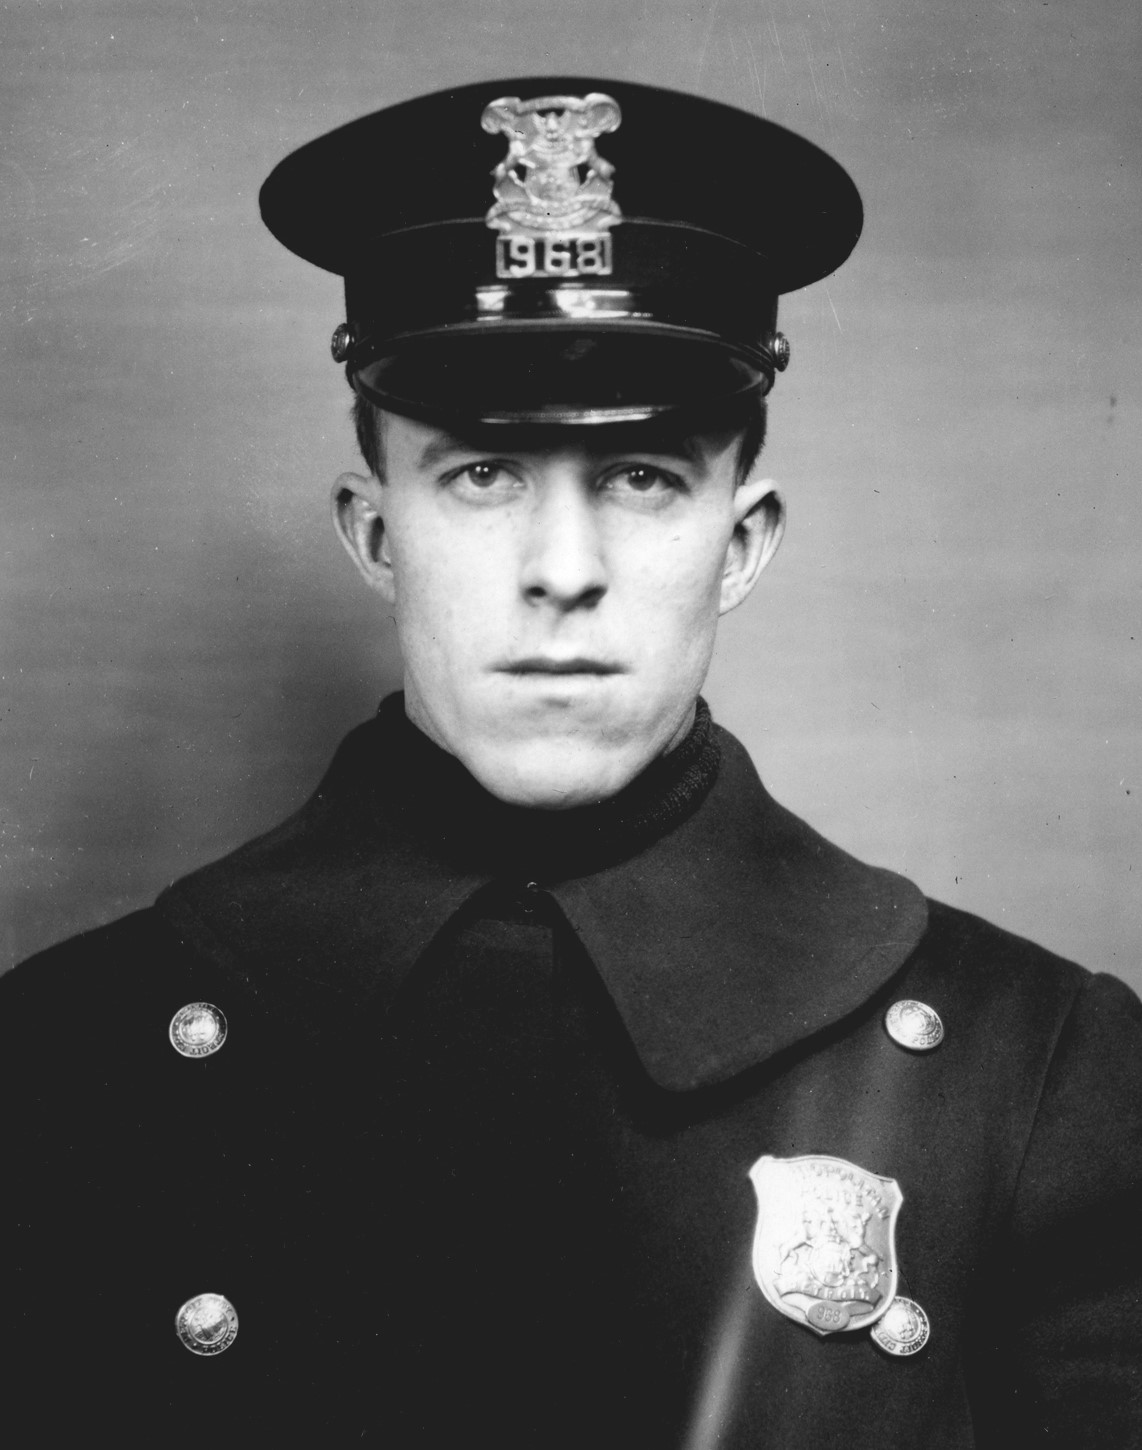 Police Officer Norman Frank Towler | Detroit Police Department, Michigan